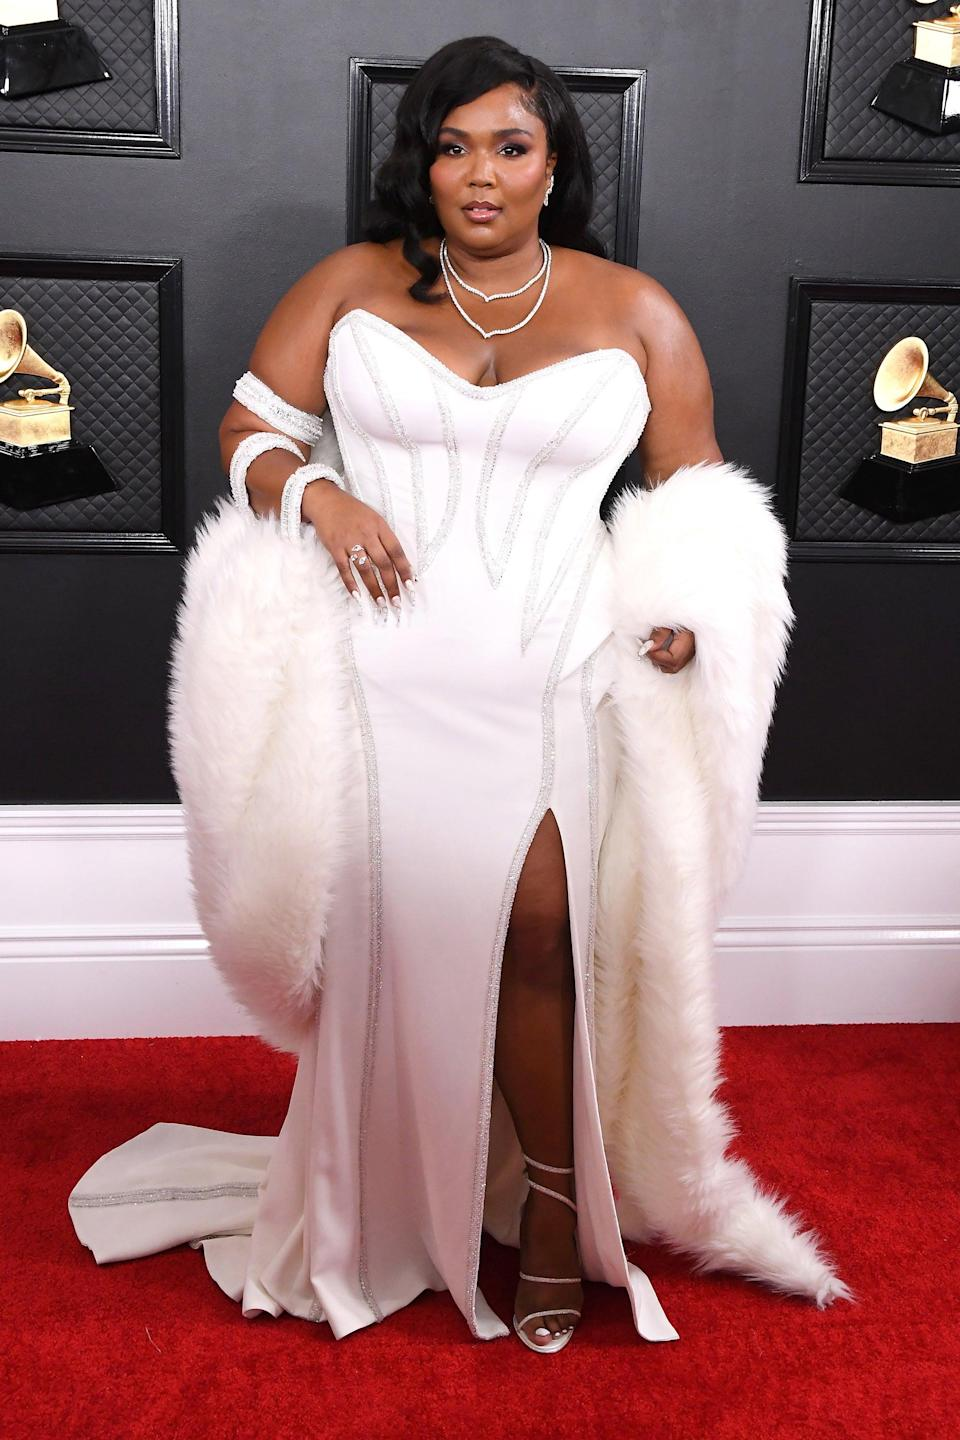 """<h2>Lizzo, 2020</h2><br>Glamorous doesn't even begin to describe this Old Hollywood-inspired Versace gown on Lizzo. <span class=""""copyright"""">Photo: Steve Granitz/WireImage.</span>"""